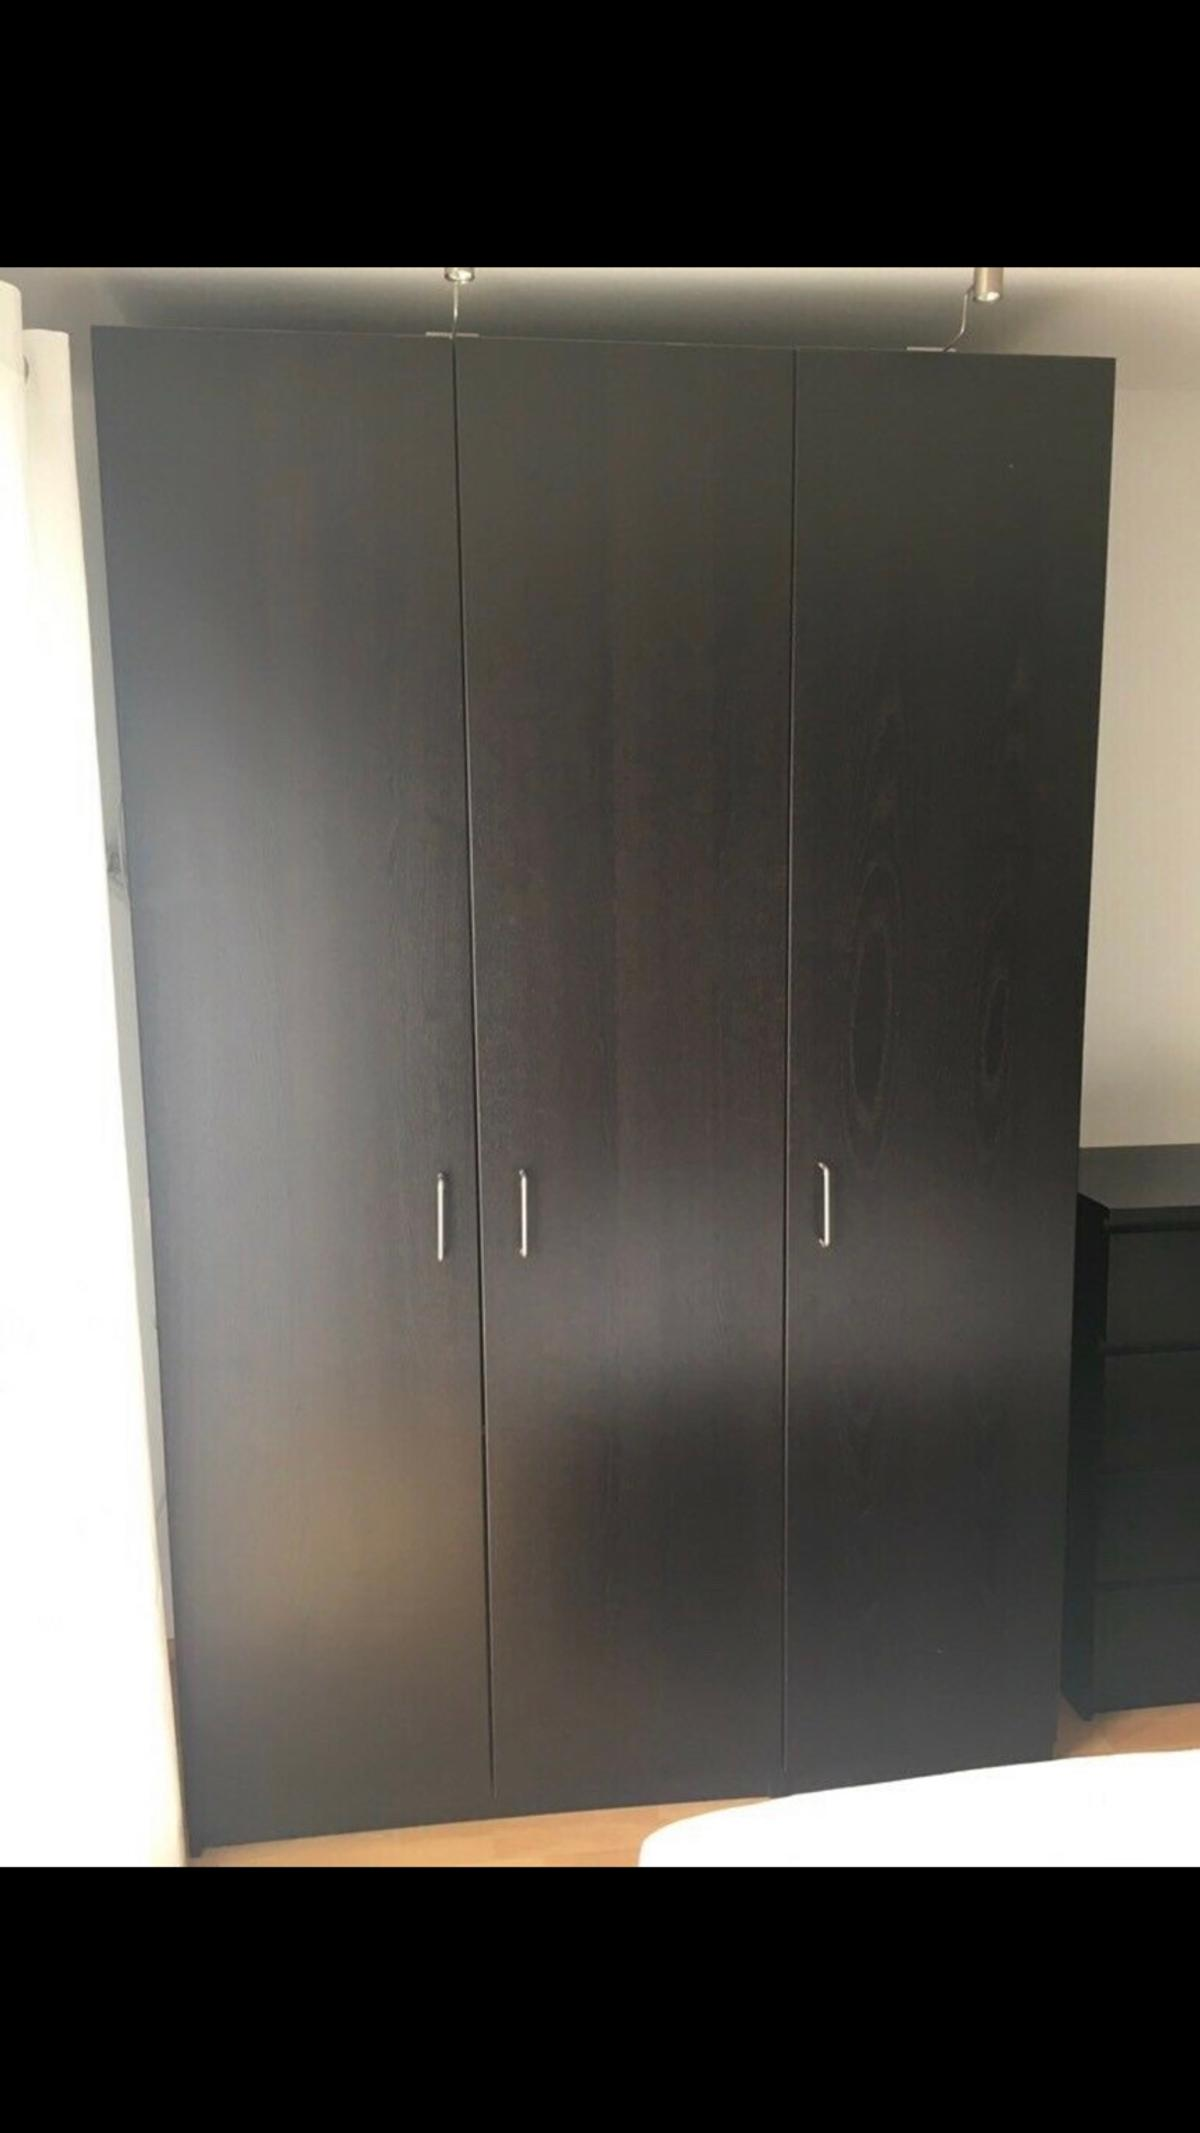 Ikea Pax Kleiderschrank 150cm Breit In 85586 Poing For 175 00 For